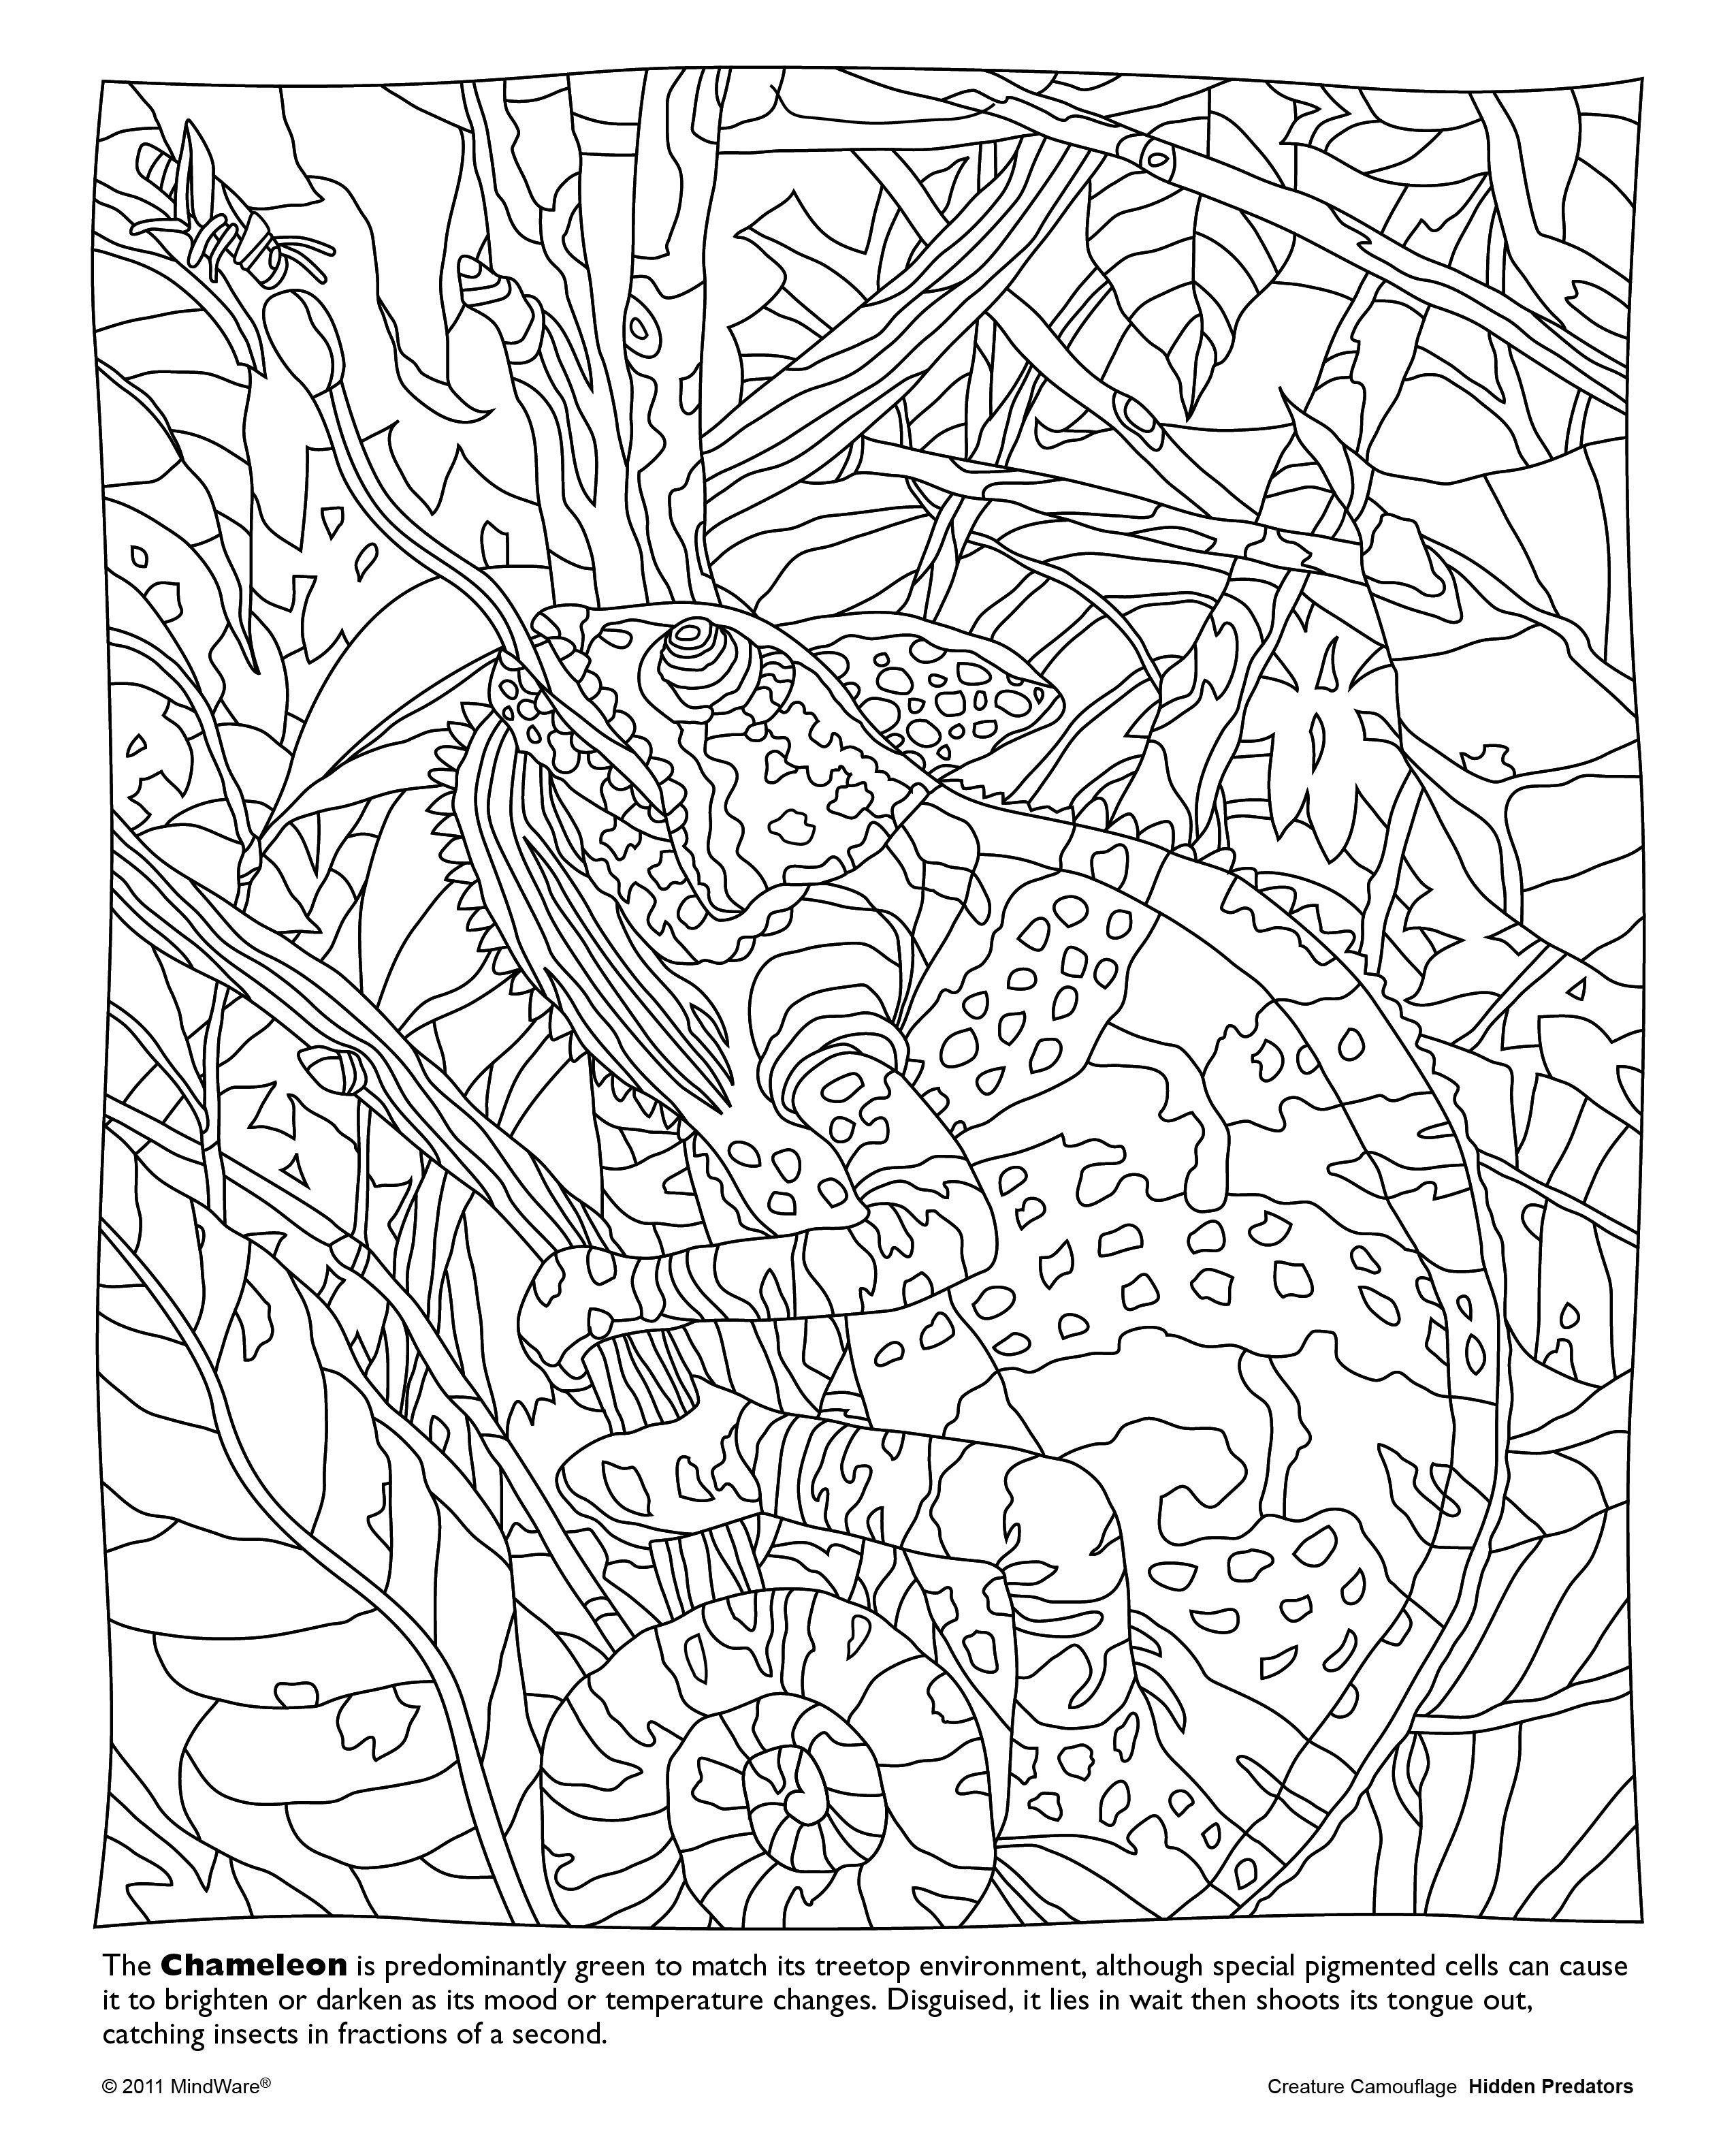 Turning Photos Into Coloring Pages Beautiful Hidden Predators Coloring Book Mindware Animal Coloring Pages Animal Coloring Books Printable Coloring Book